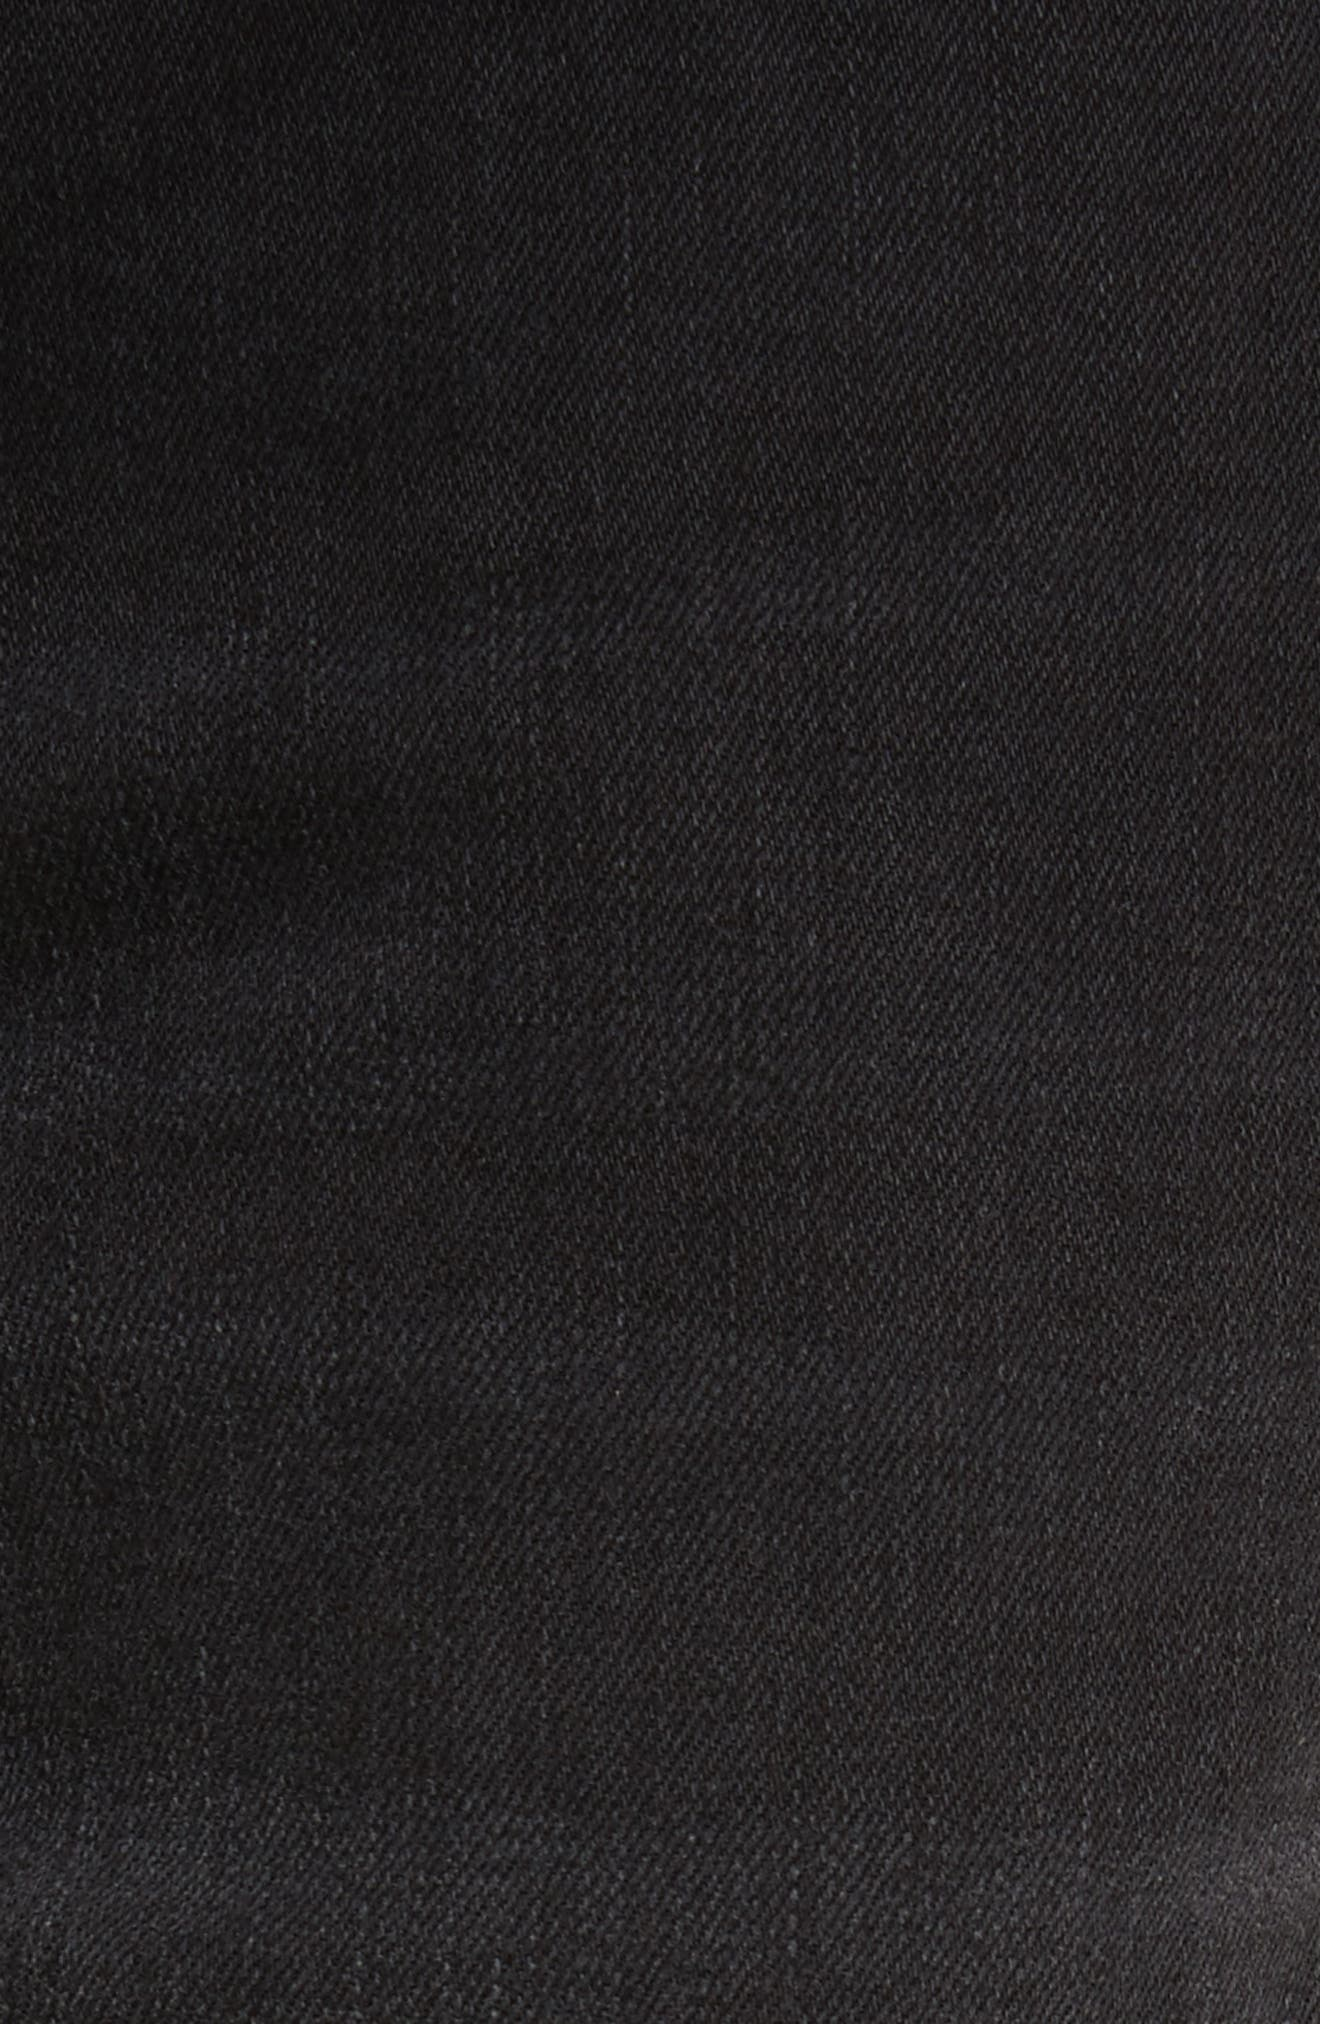 River Used Jeans,                             Alternate thumbnail 5, color,                             151 USED BLACK